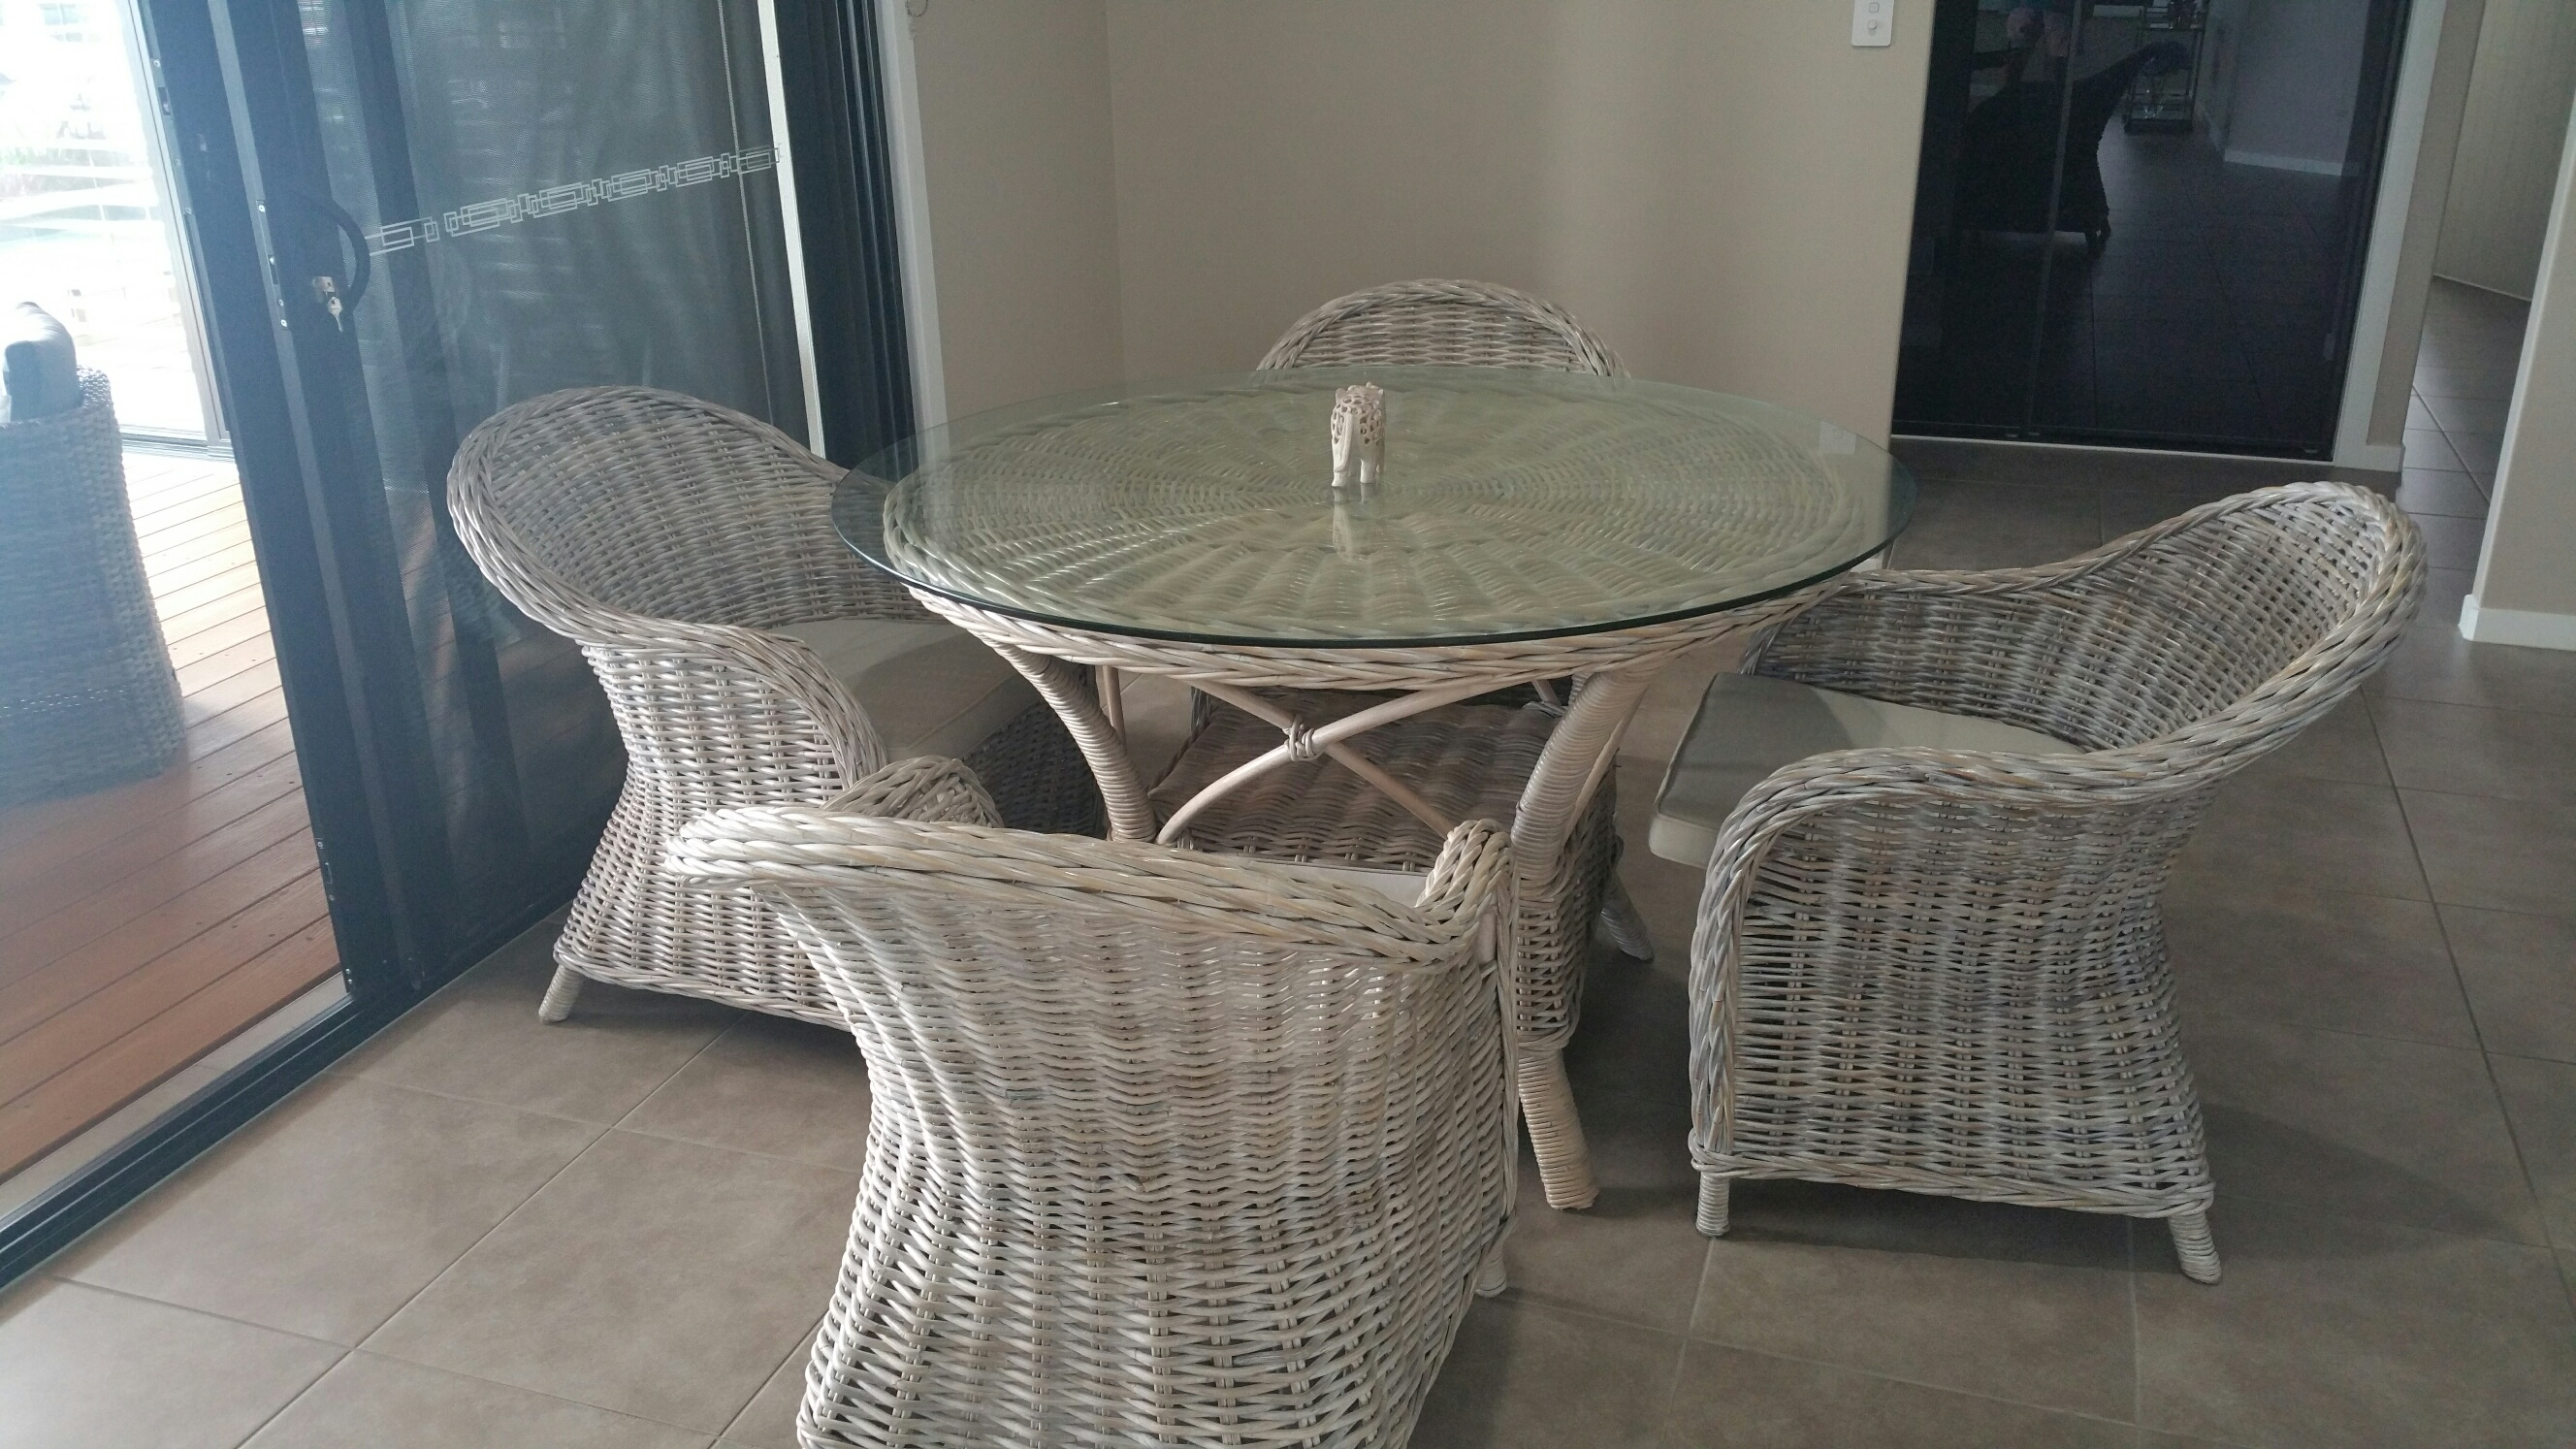 Out door and indoor Dining tables with chairs